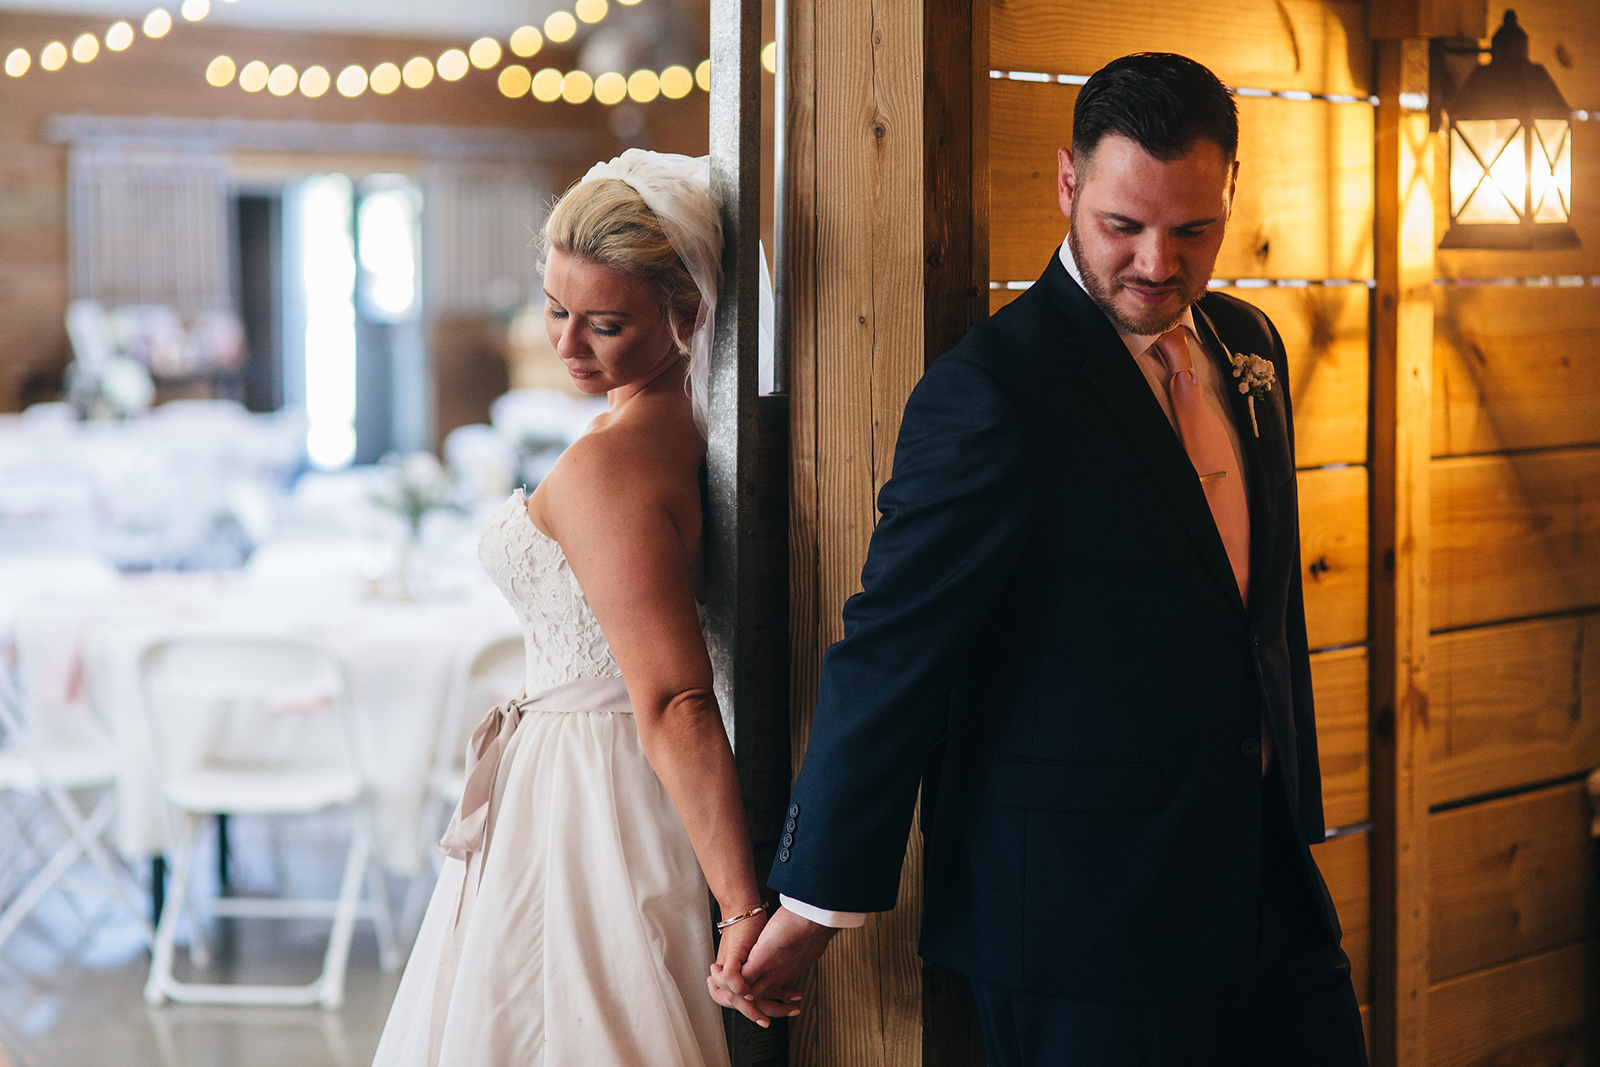 Bride and groom holding hands before their wedding at The Stables in Whitehouse, Ohio.